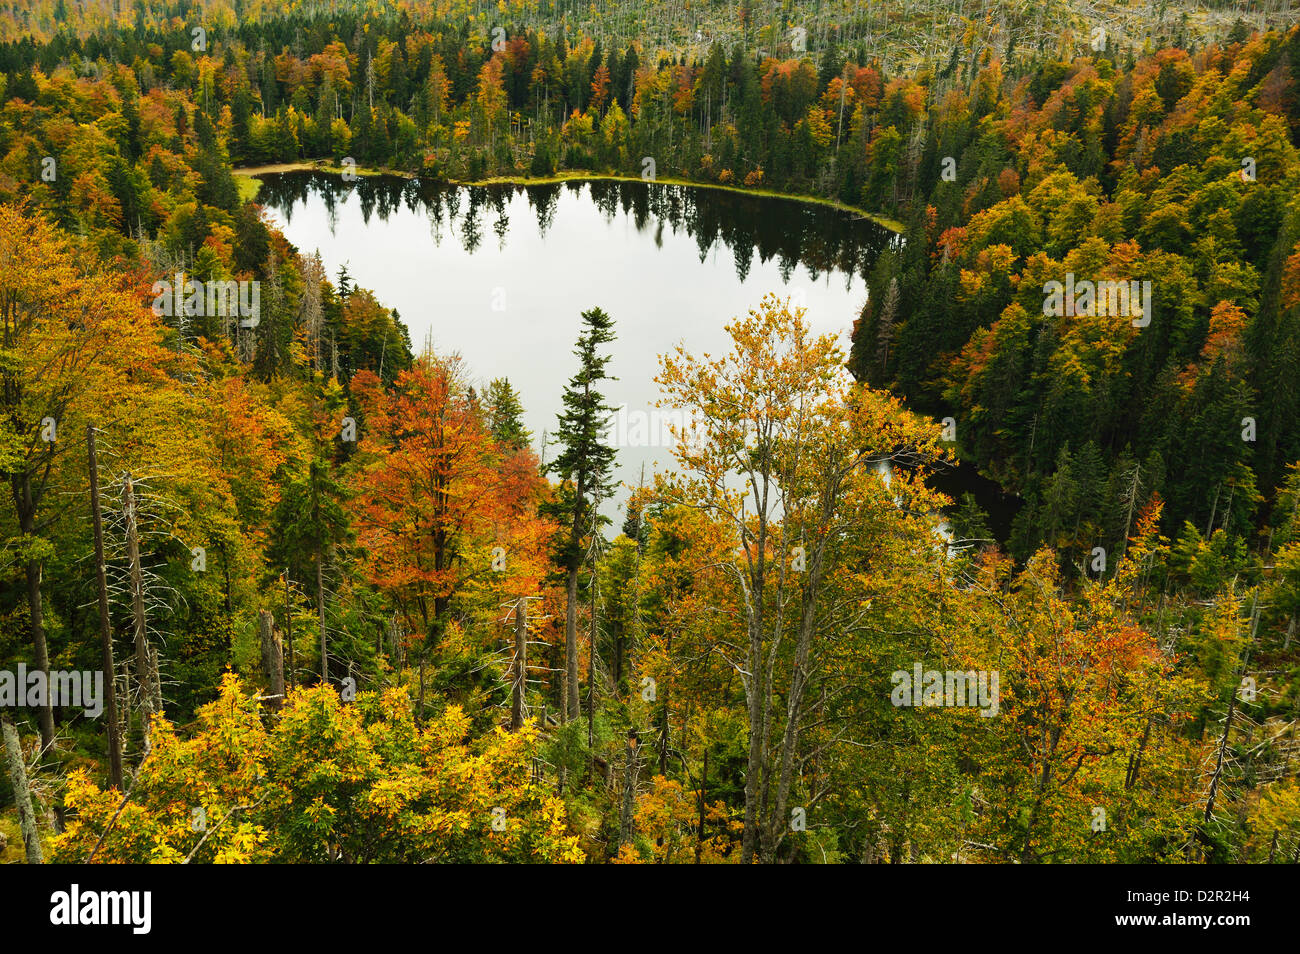 Rachelsee (Rachel Lake), Grosser Rachel, Bavarian Forest National Park, Bavarian Forest, Bavaria, Germany, Europe Stock Photo